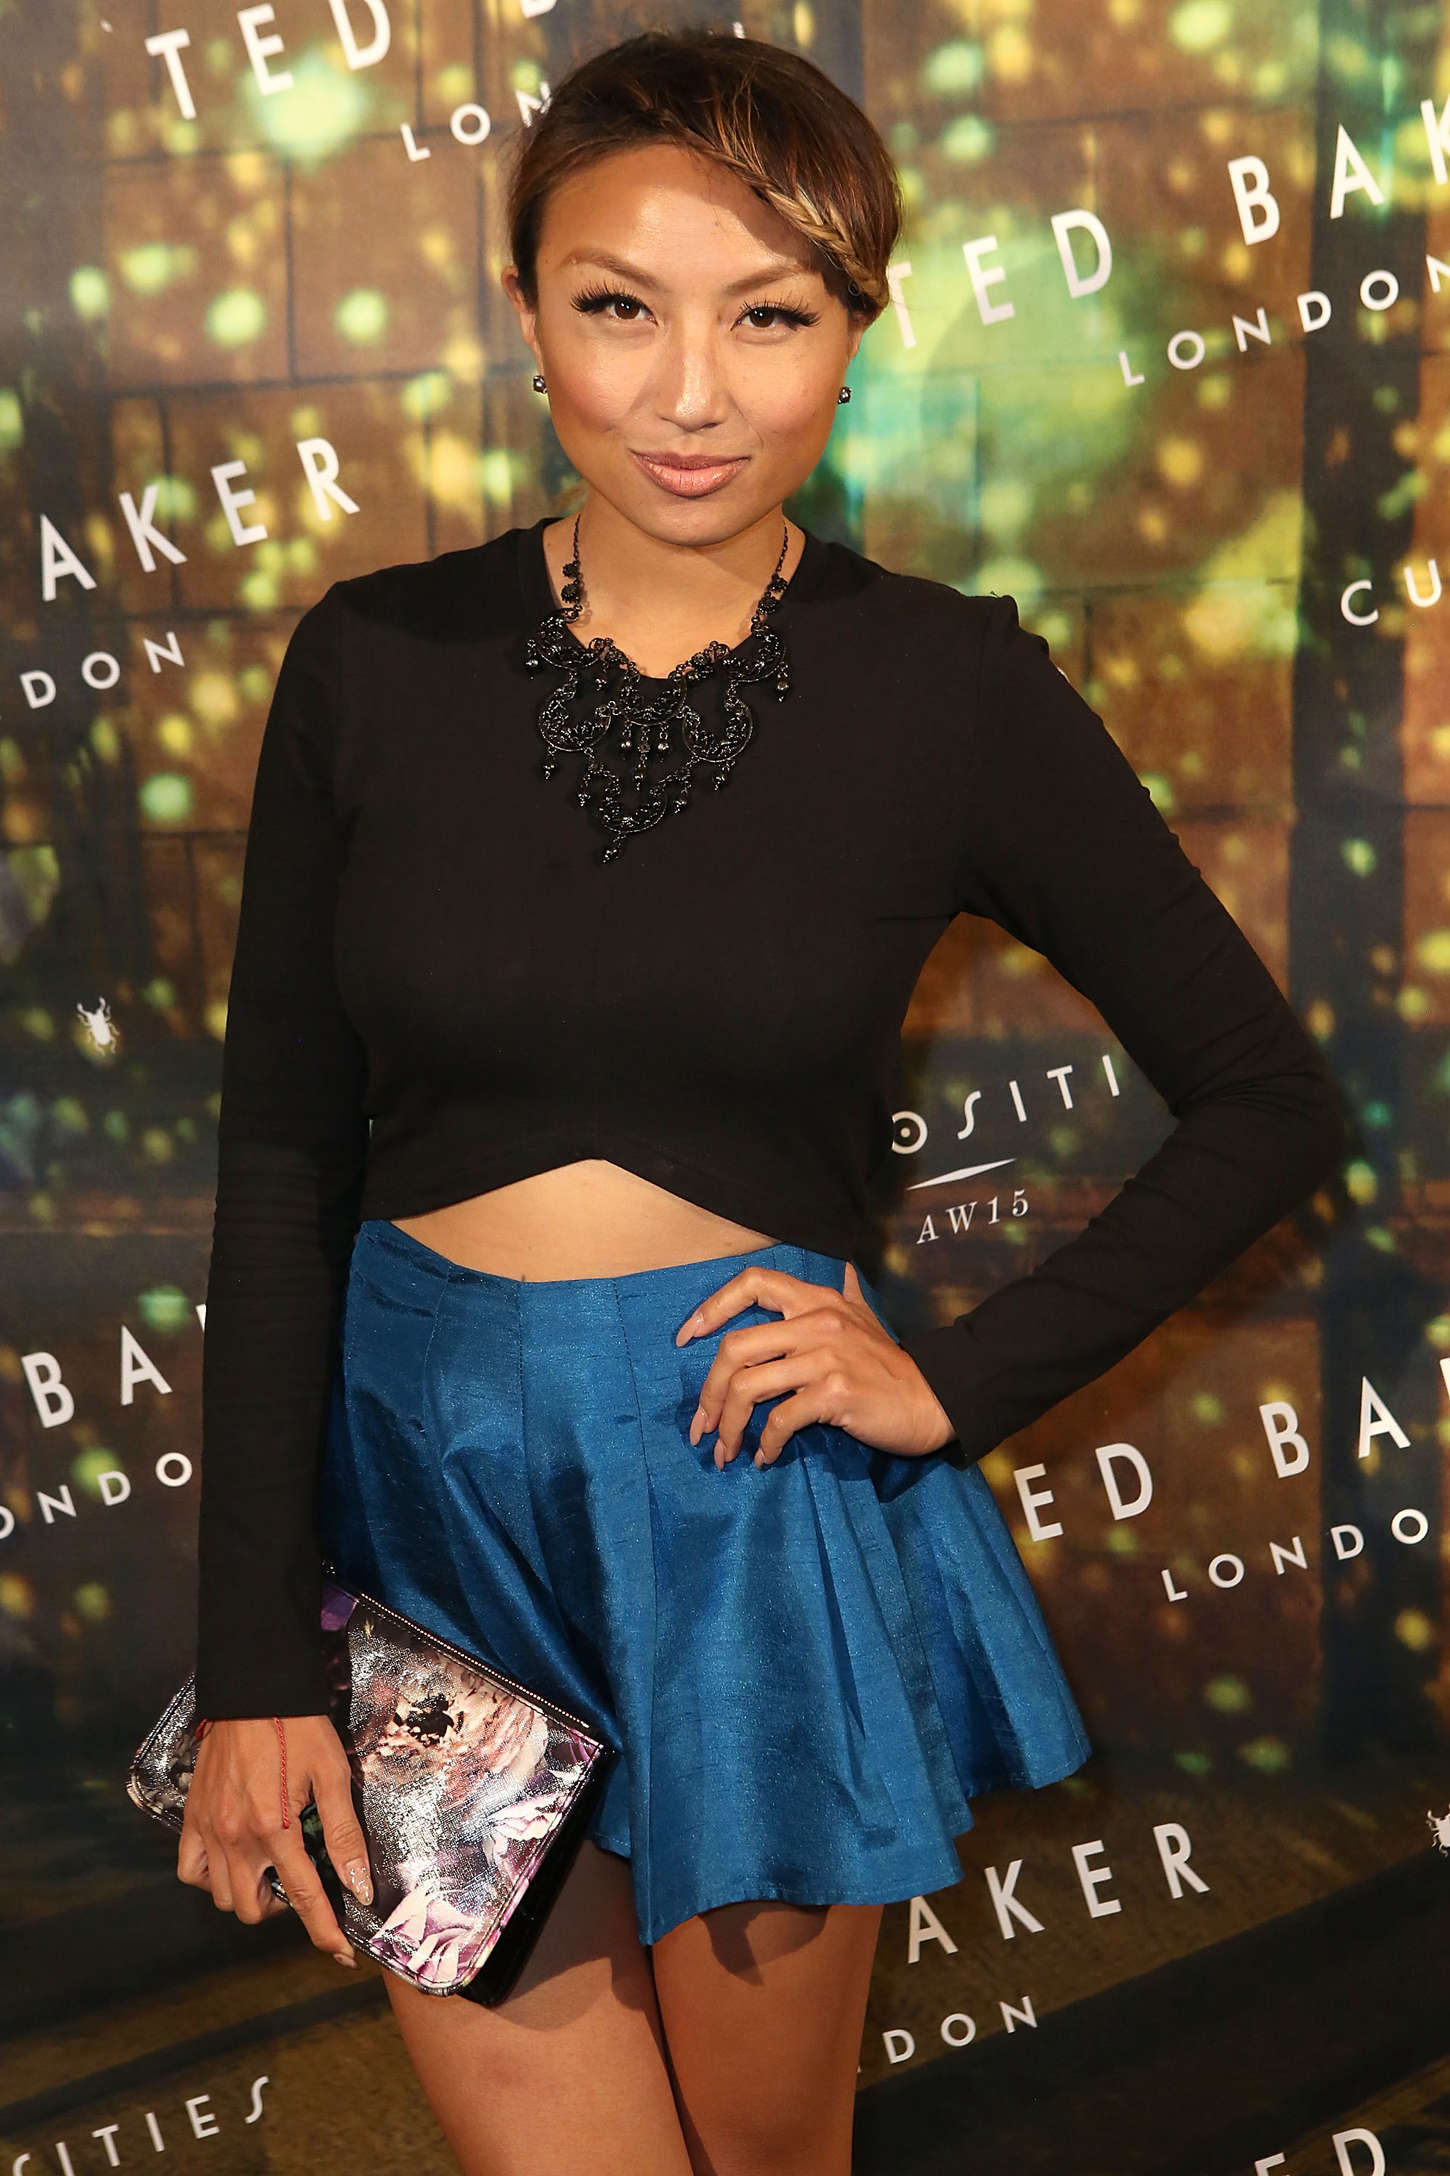 Jeannie Mai - The Carondelet House in Los Angeles